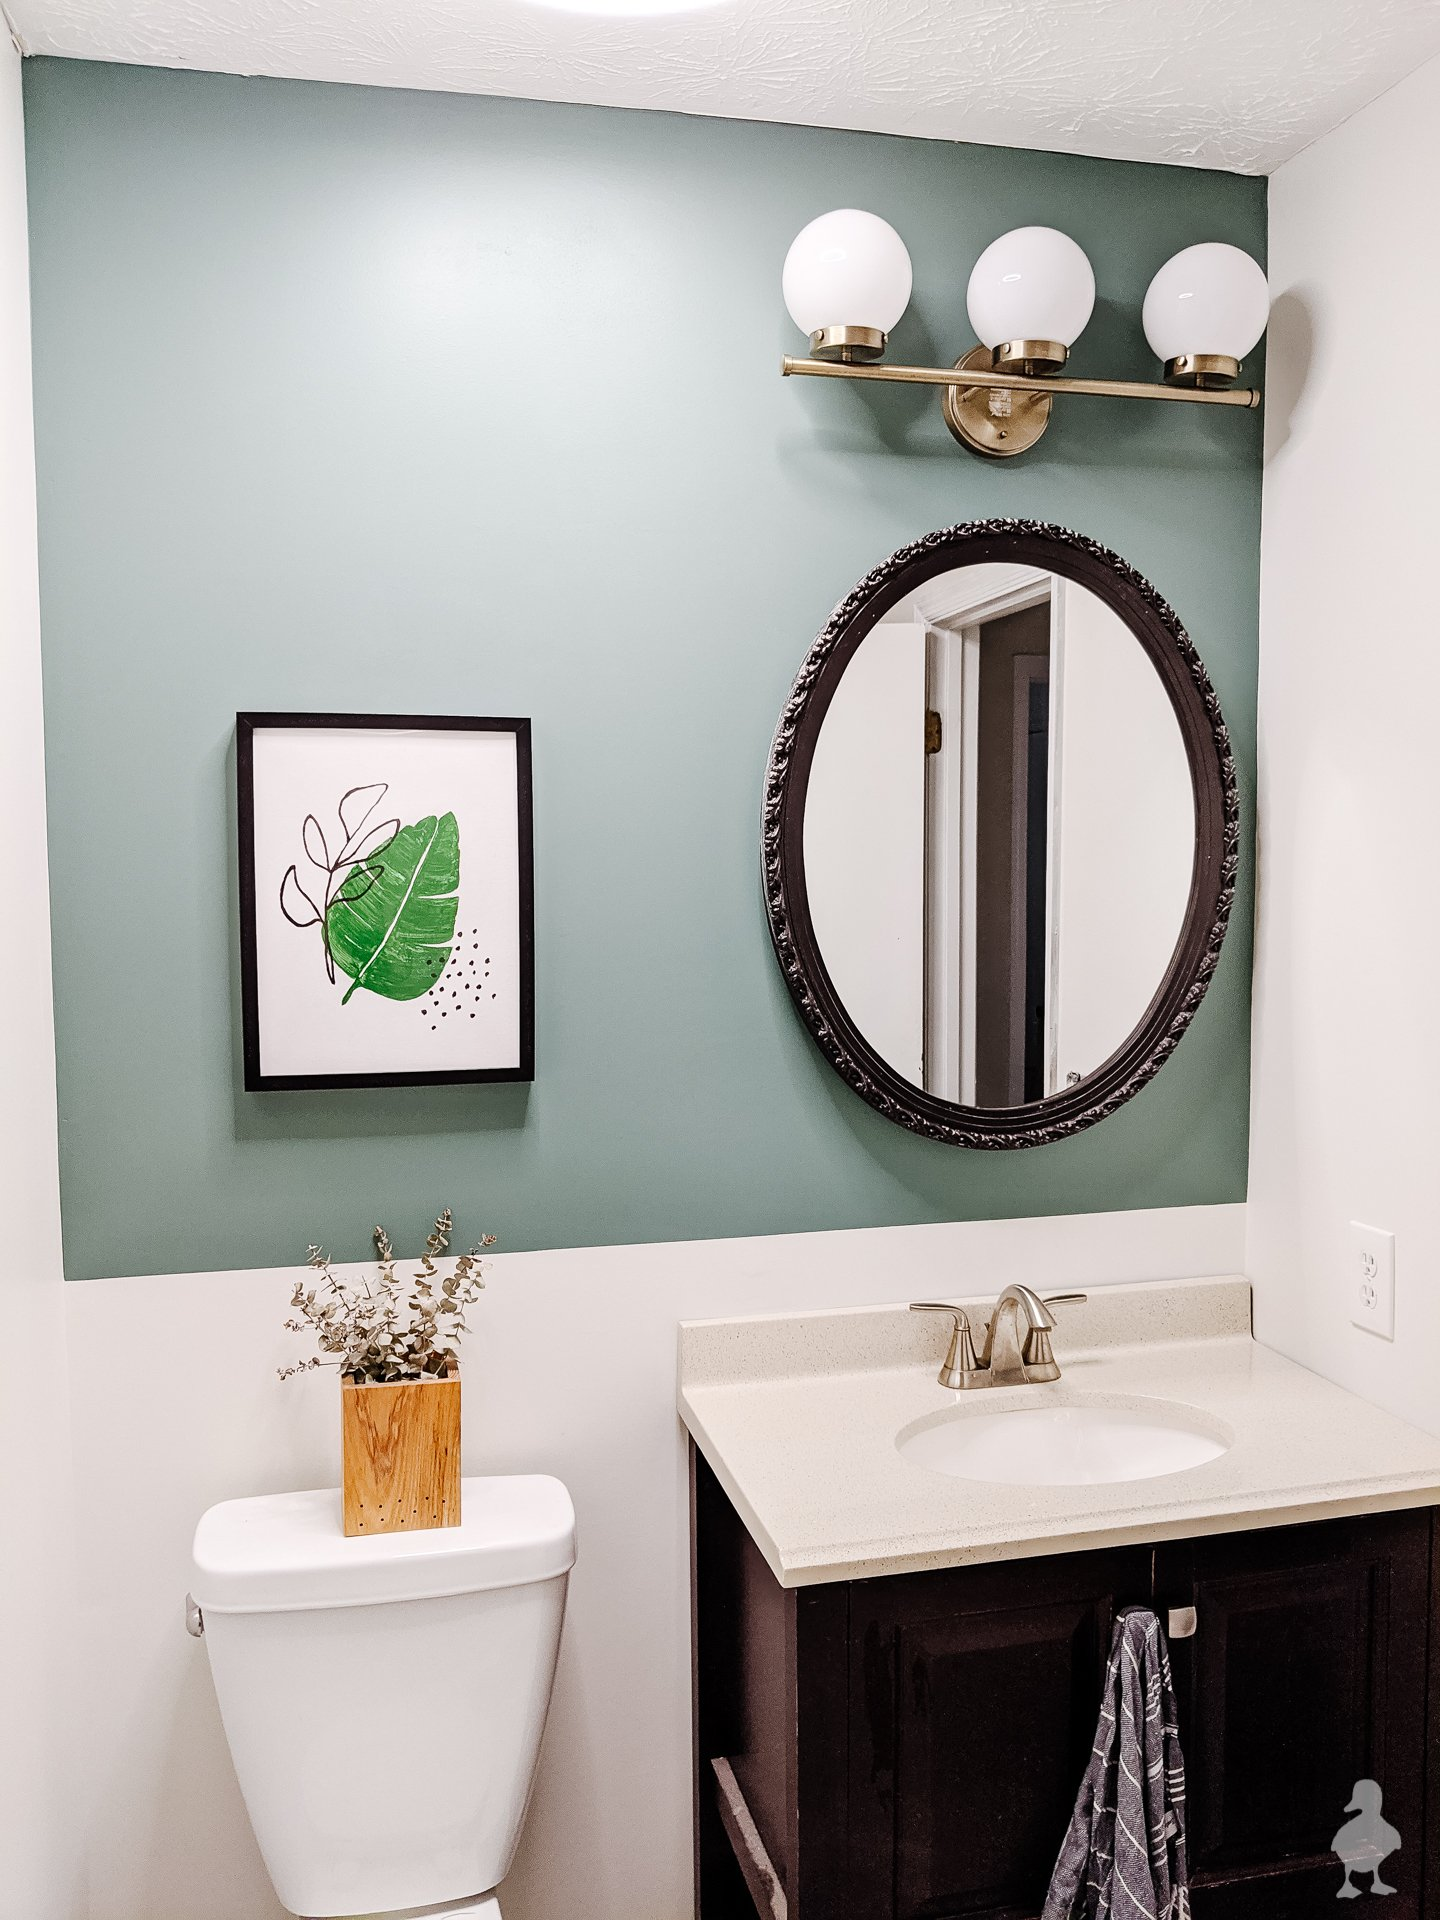 A Quick Refresh for the Guest Bath!